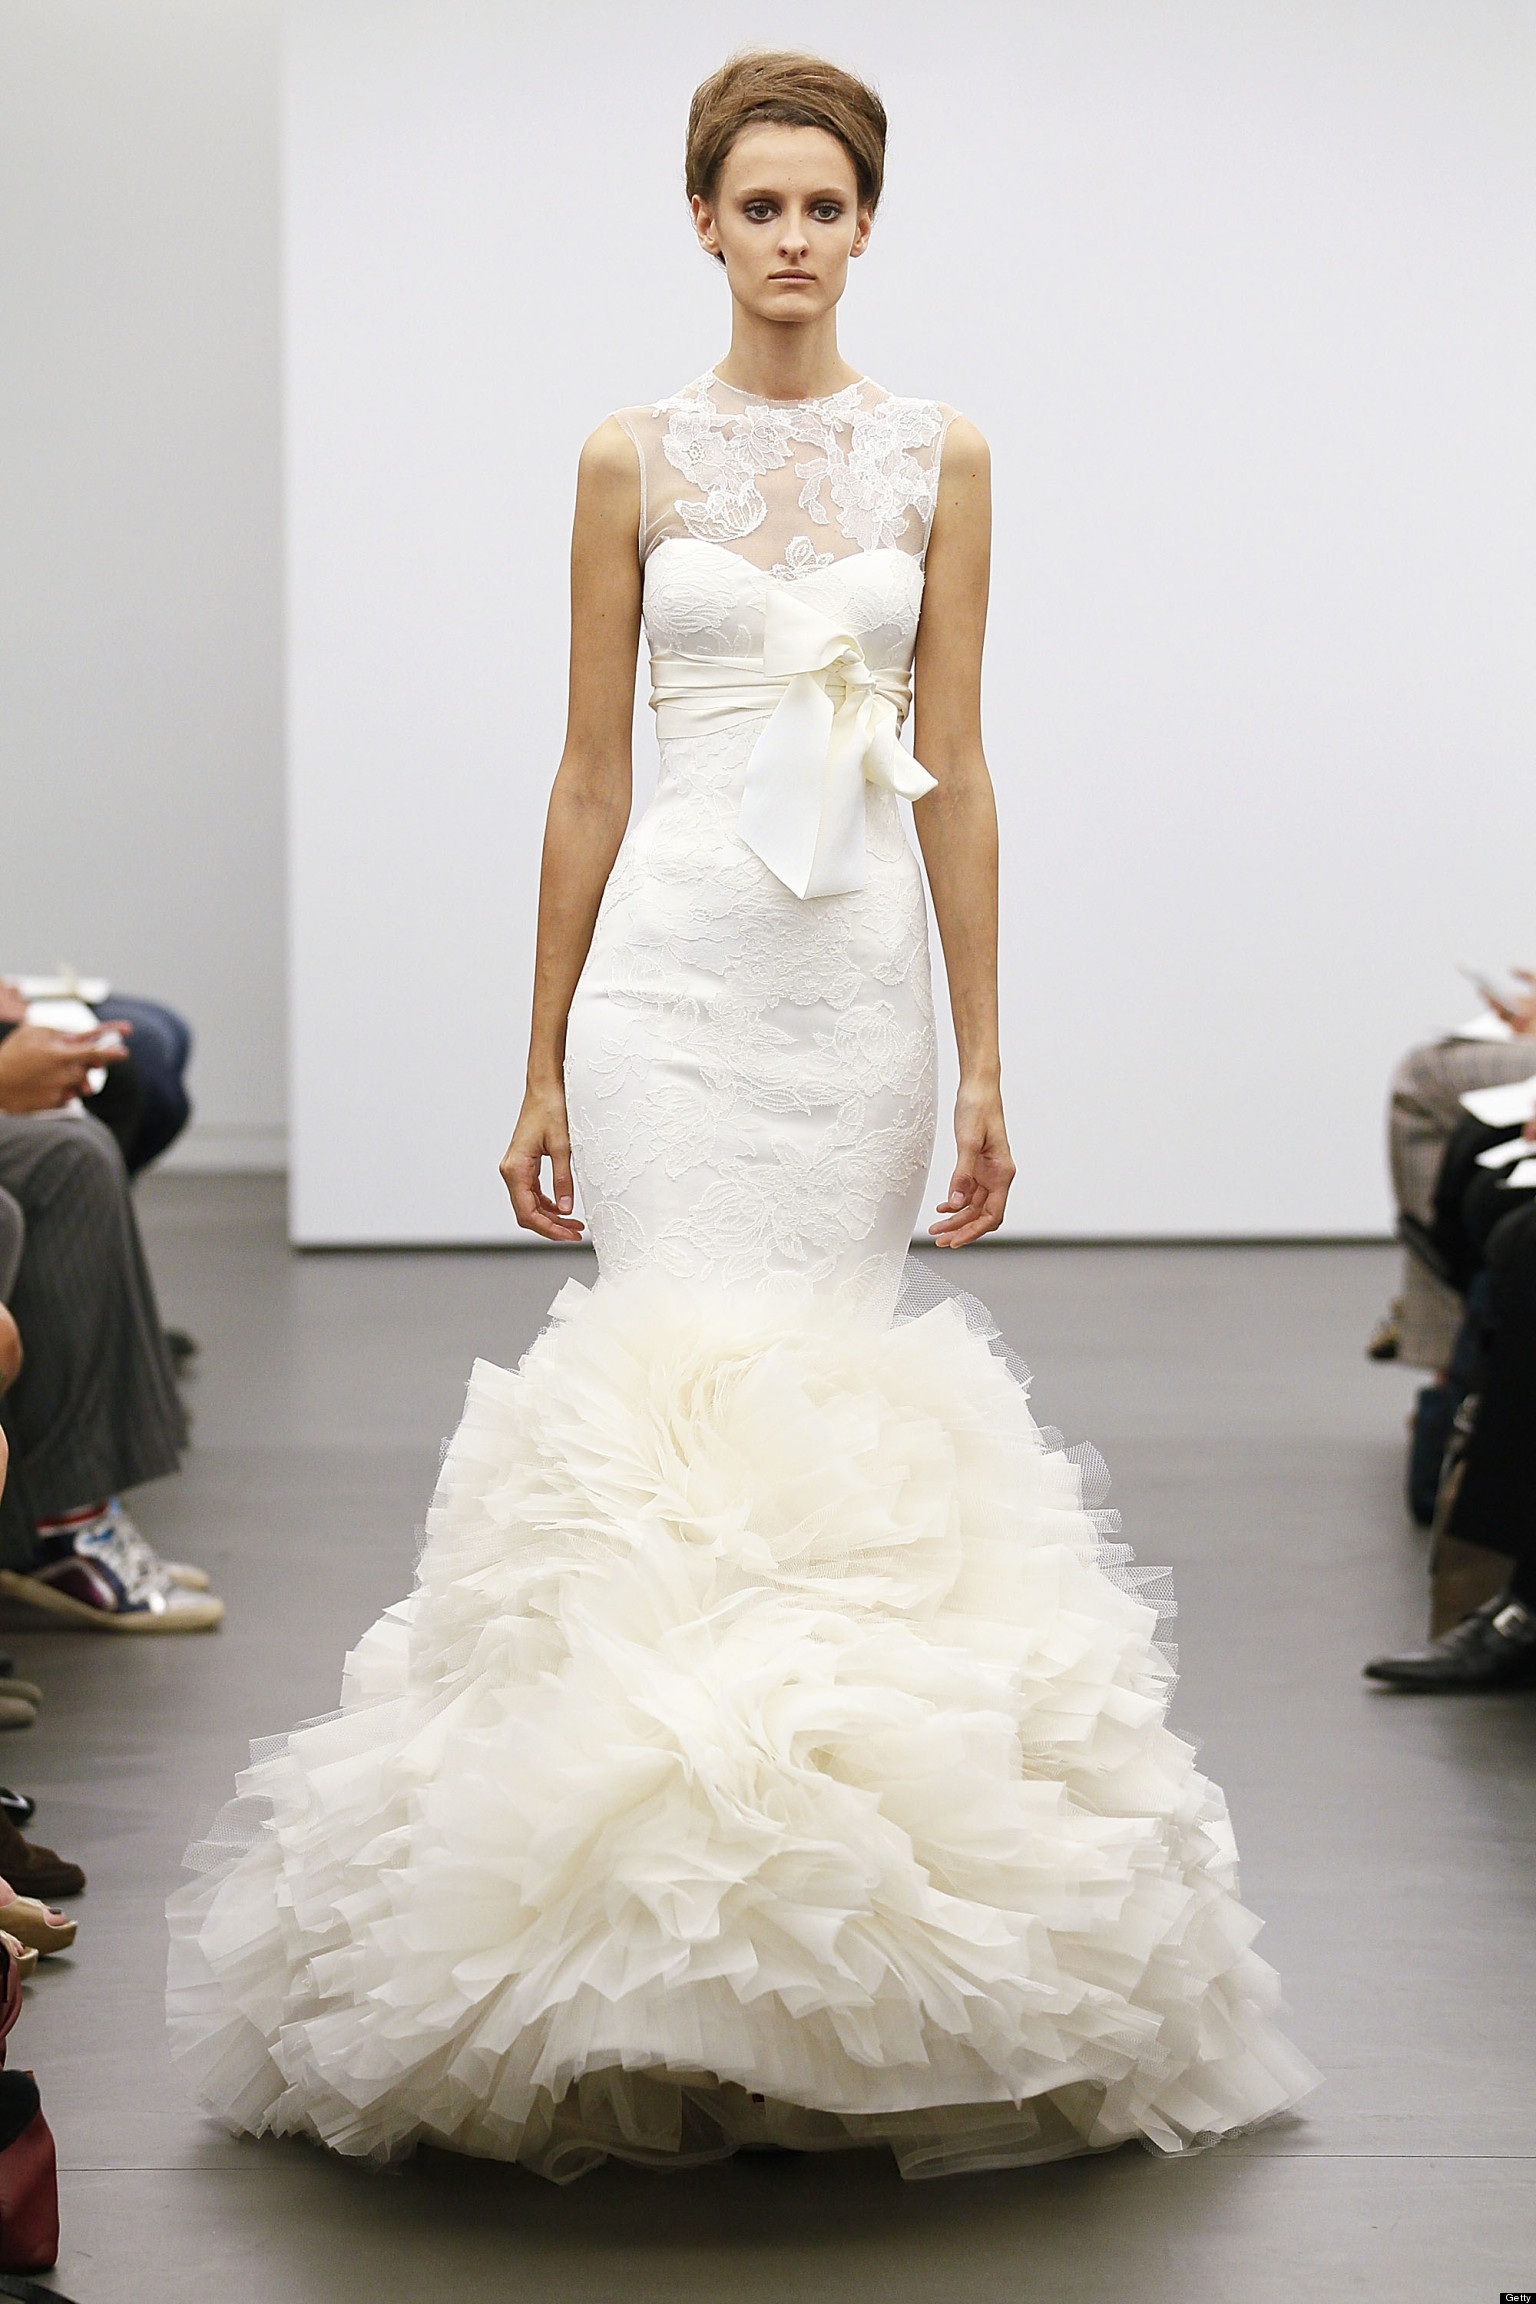 Vera Wang Fall 2013 Bridal Collection Features Classic Ivory, Lace ...